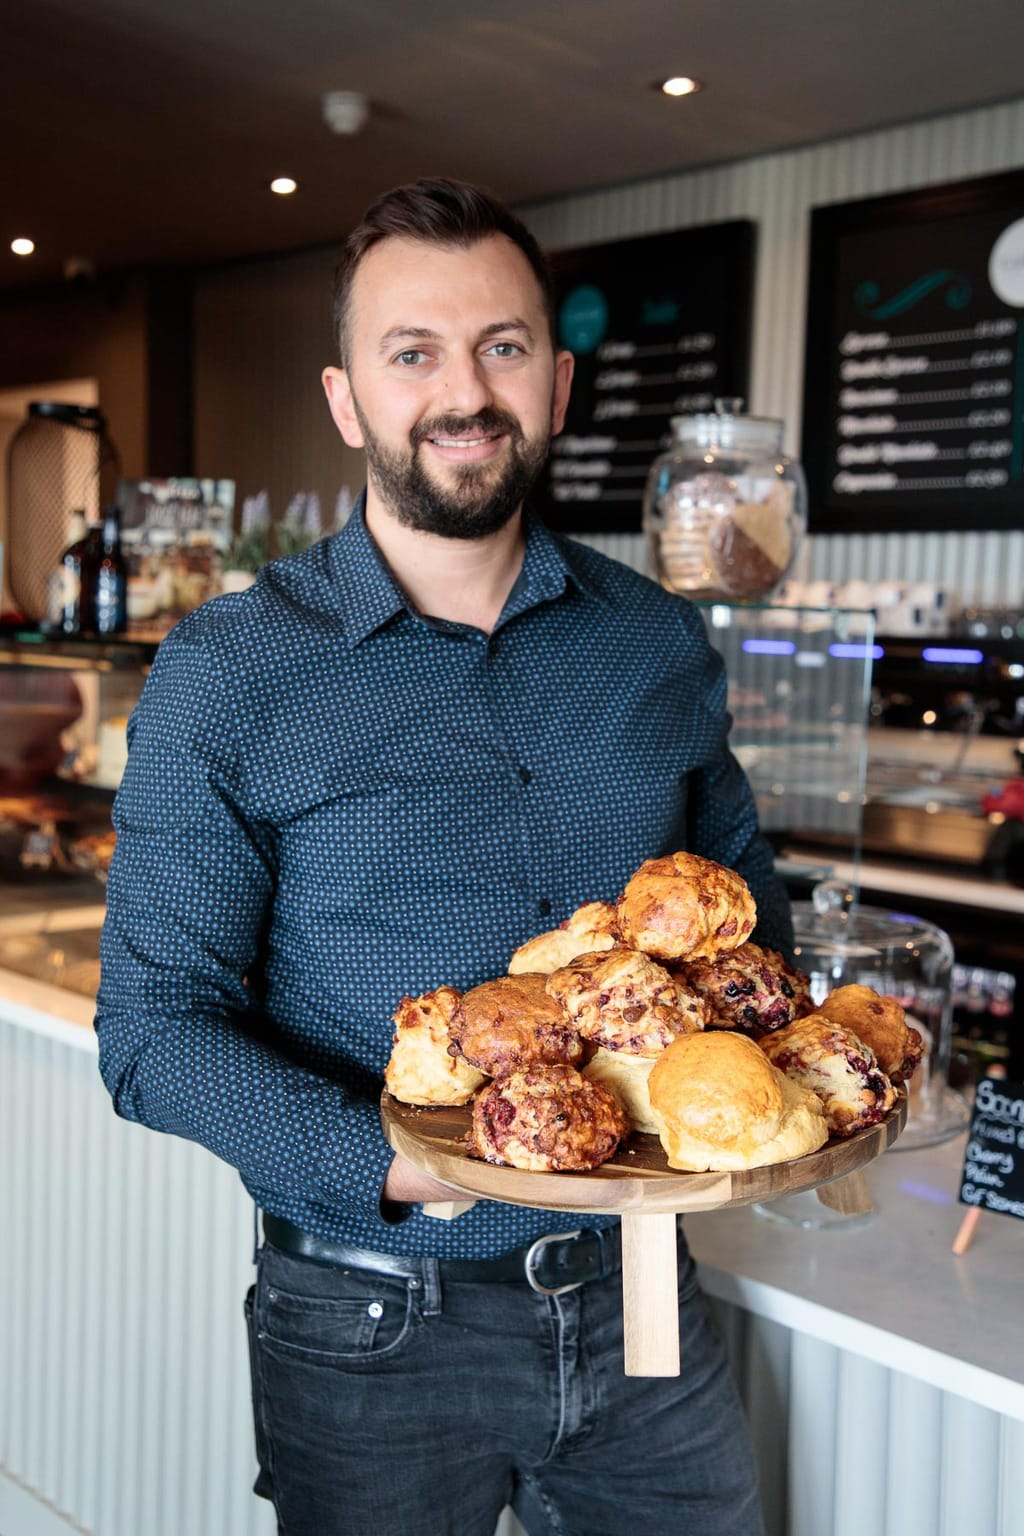 Photo of the very proud manager of Castello Italia restaurant holding a plate of fresh scones.